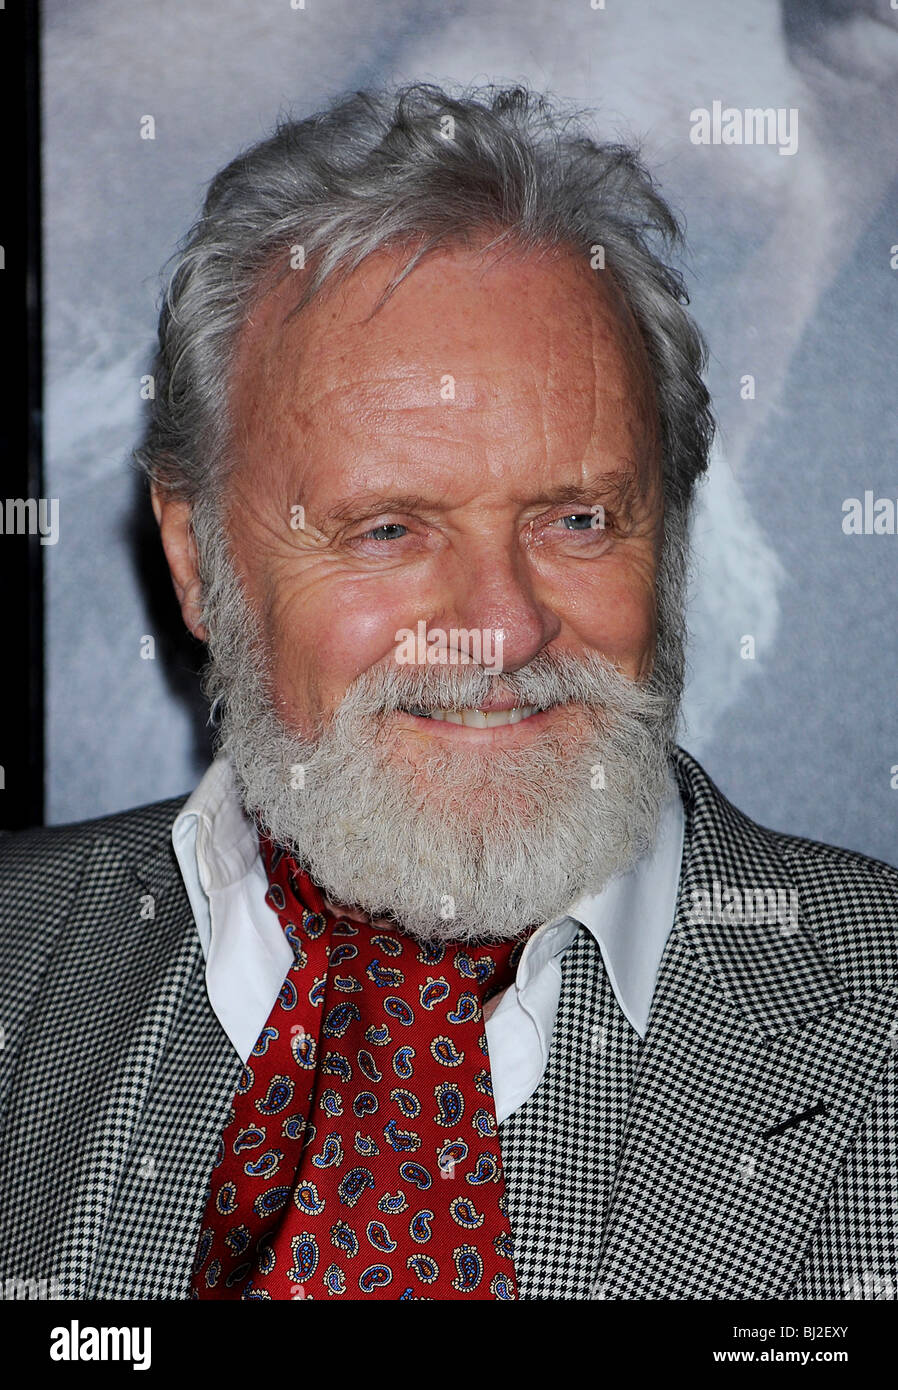 SIR ANTHONY HOPKINS - UK film actor in February 2010 - Stock Image